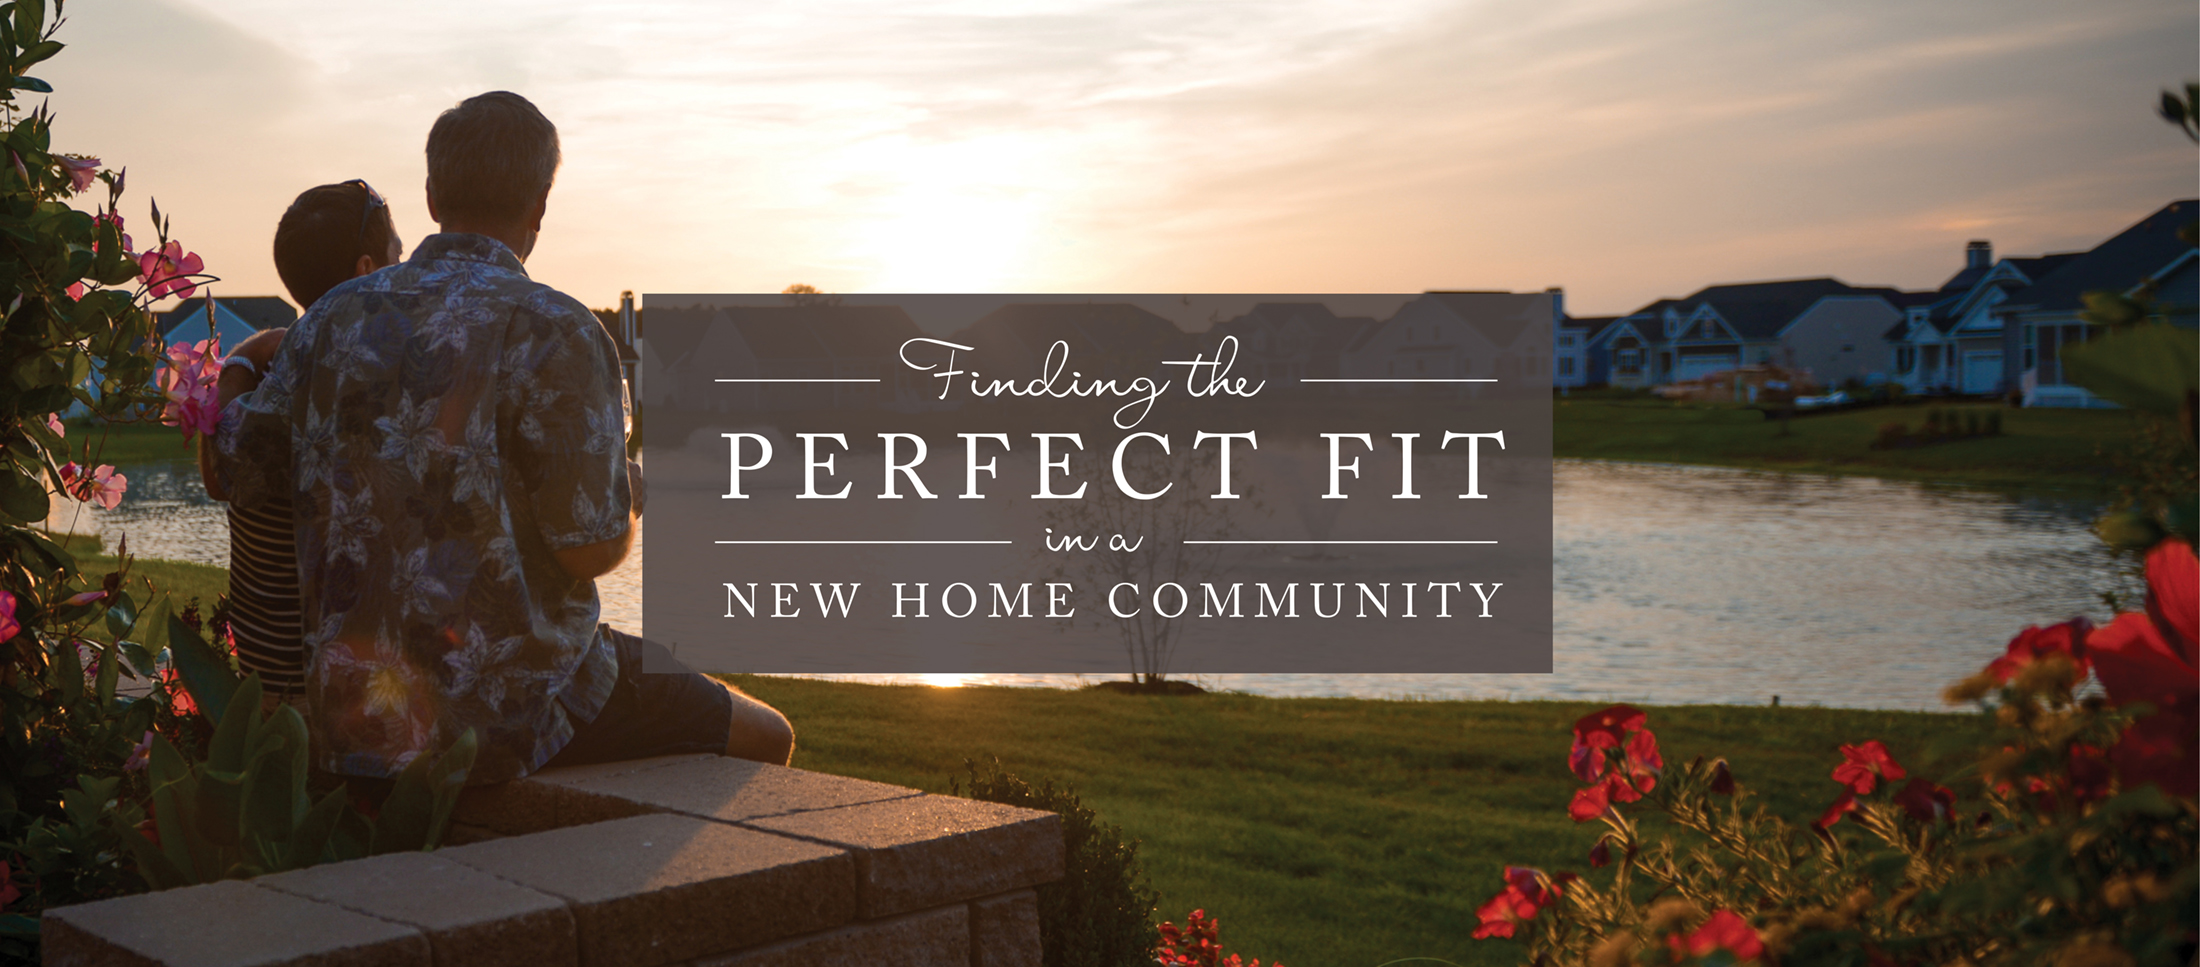 new home community